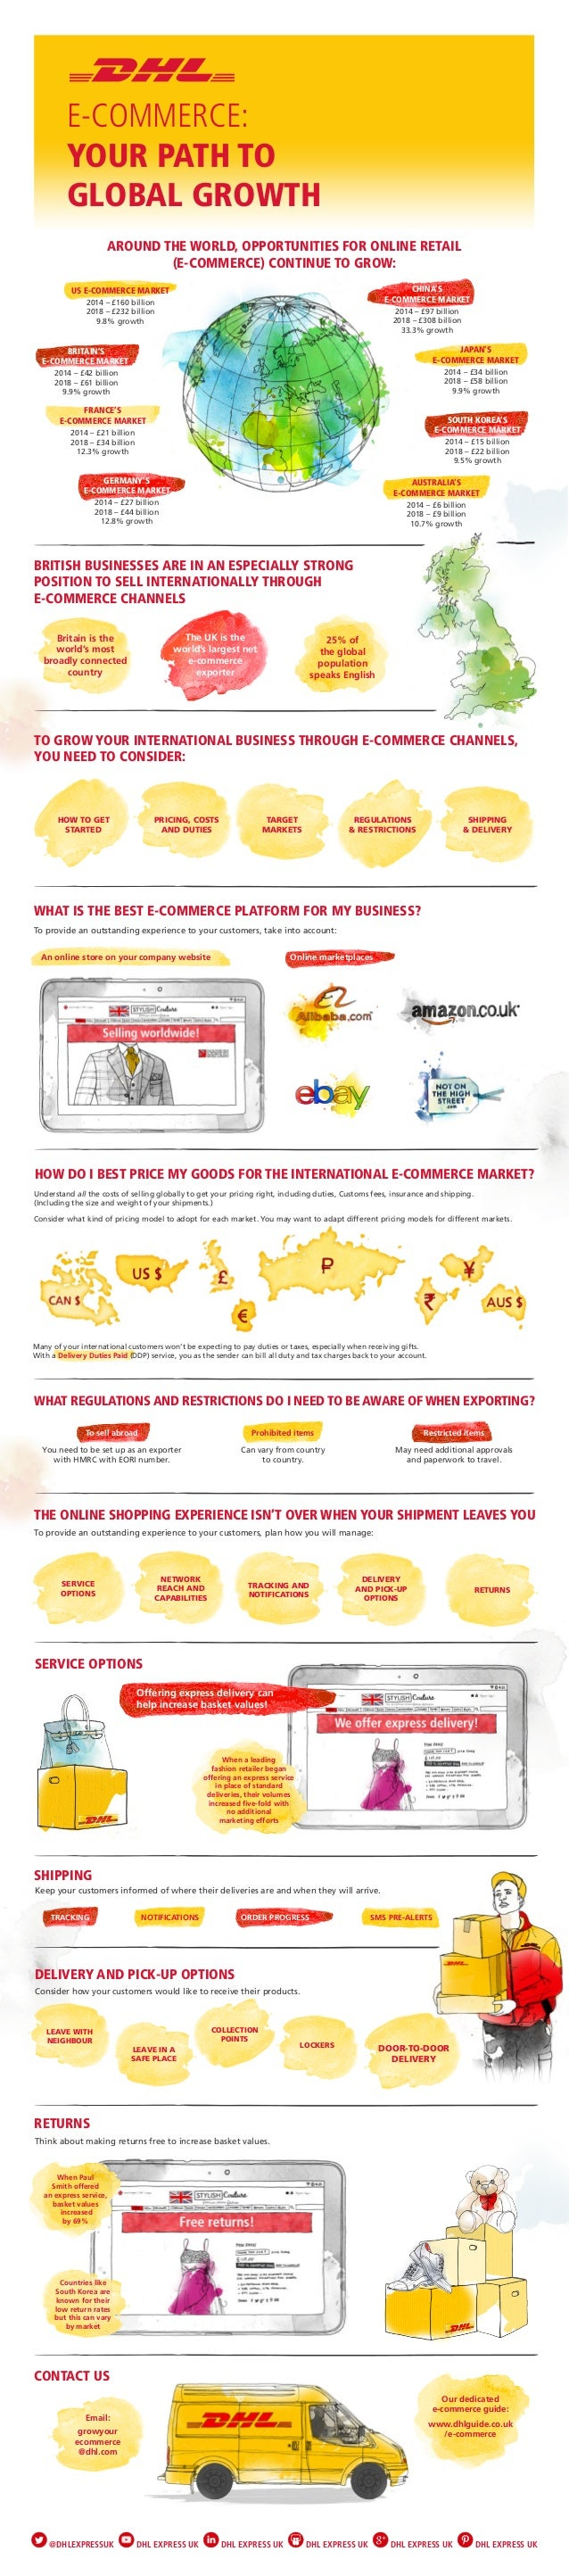 Grow your business through global e-commerce